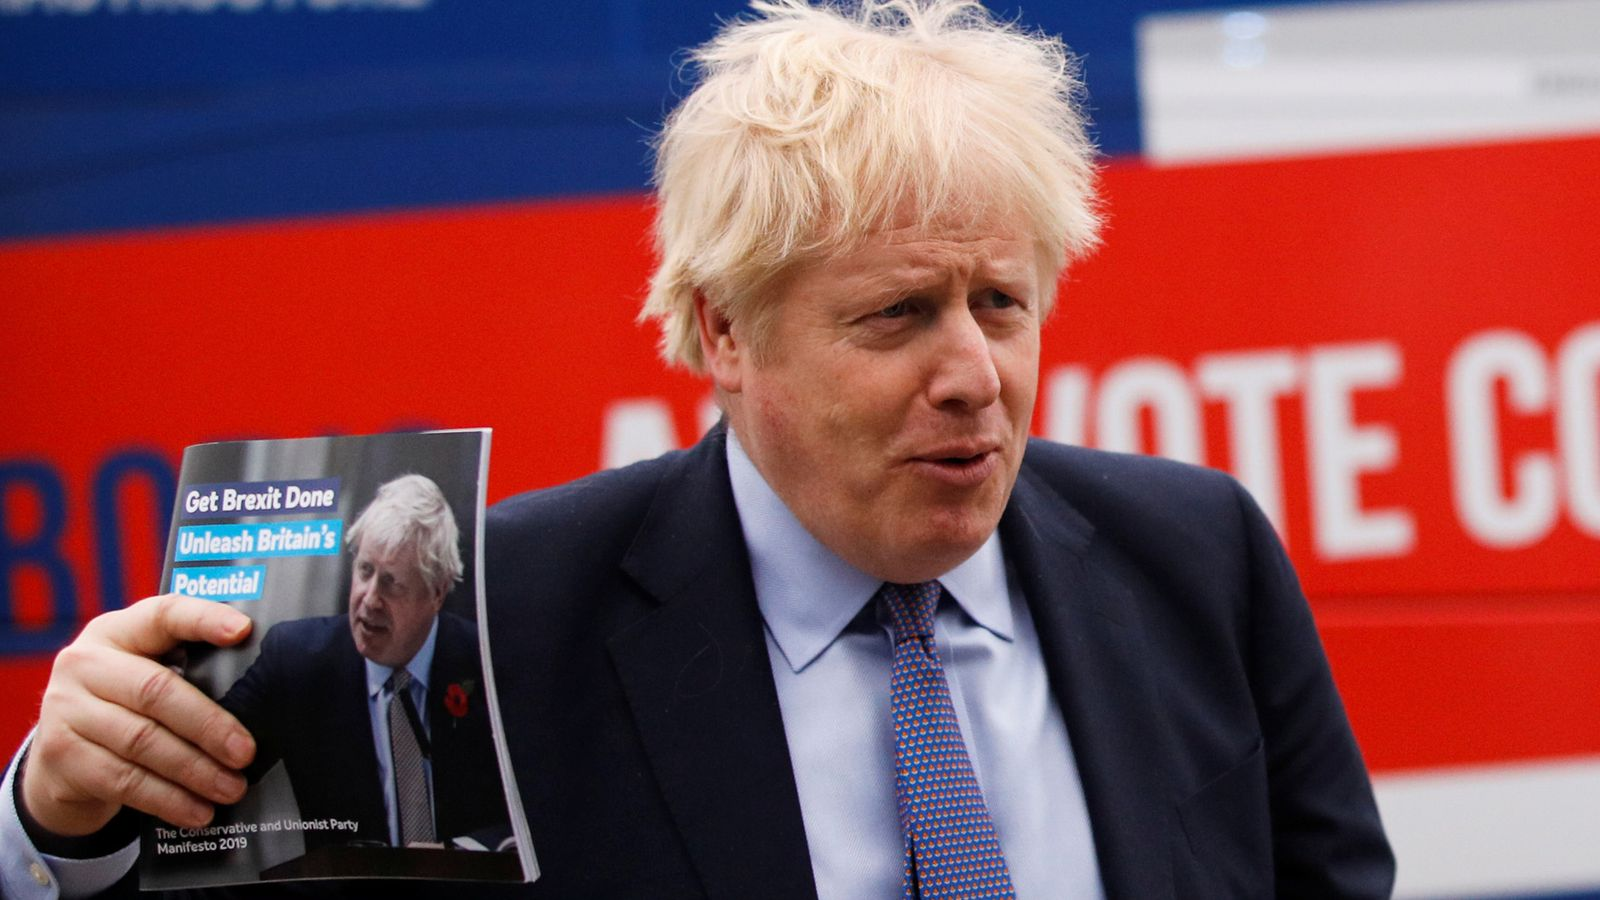 General election LIVE: Boris Johnson promises to 'forge a new Britain' at manifesto launch | Politics News | Sky News